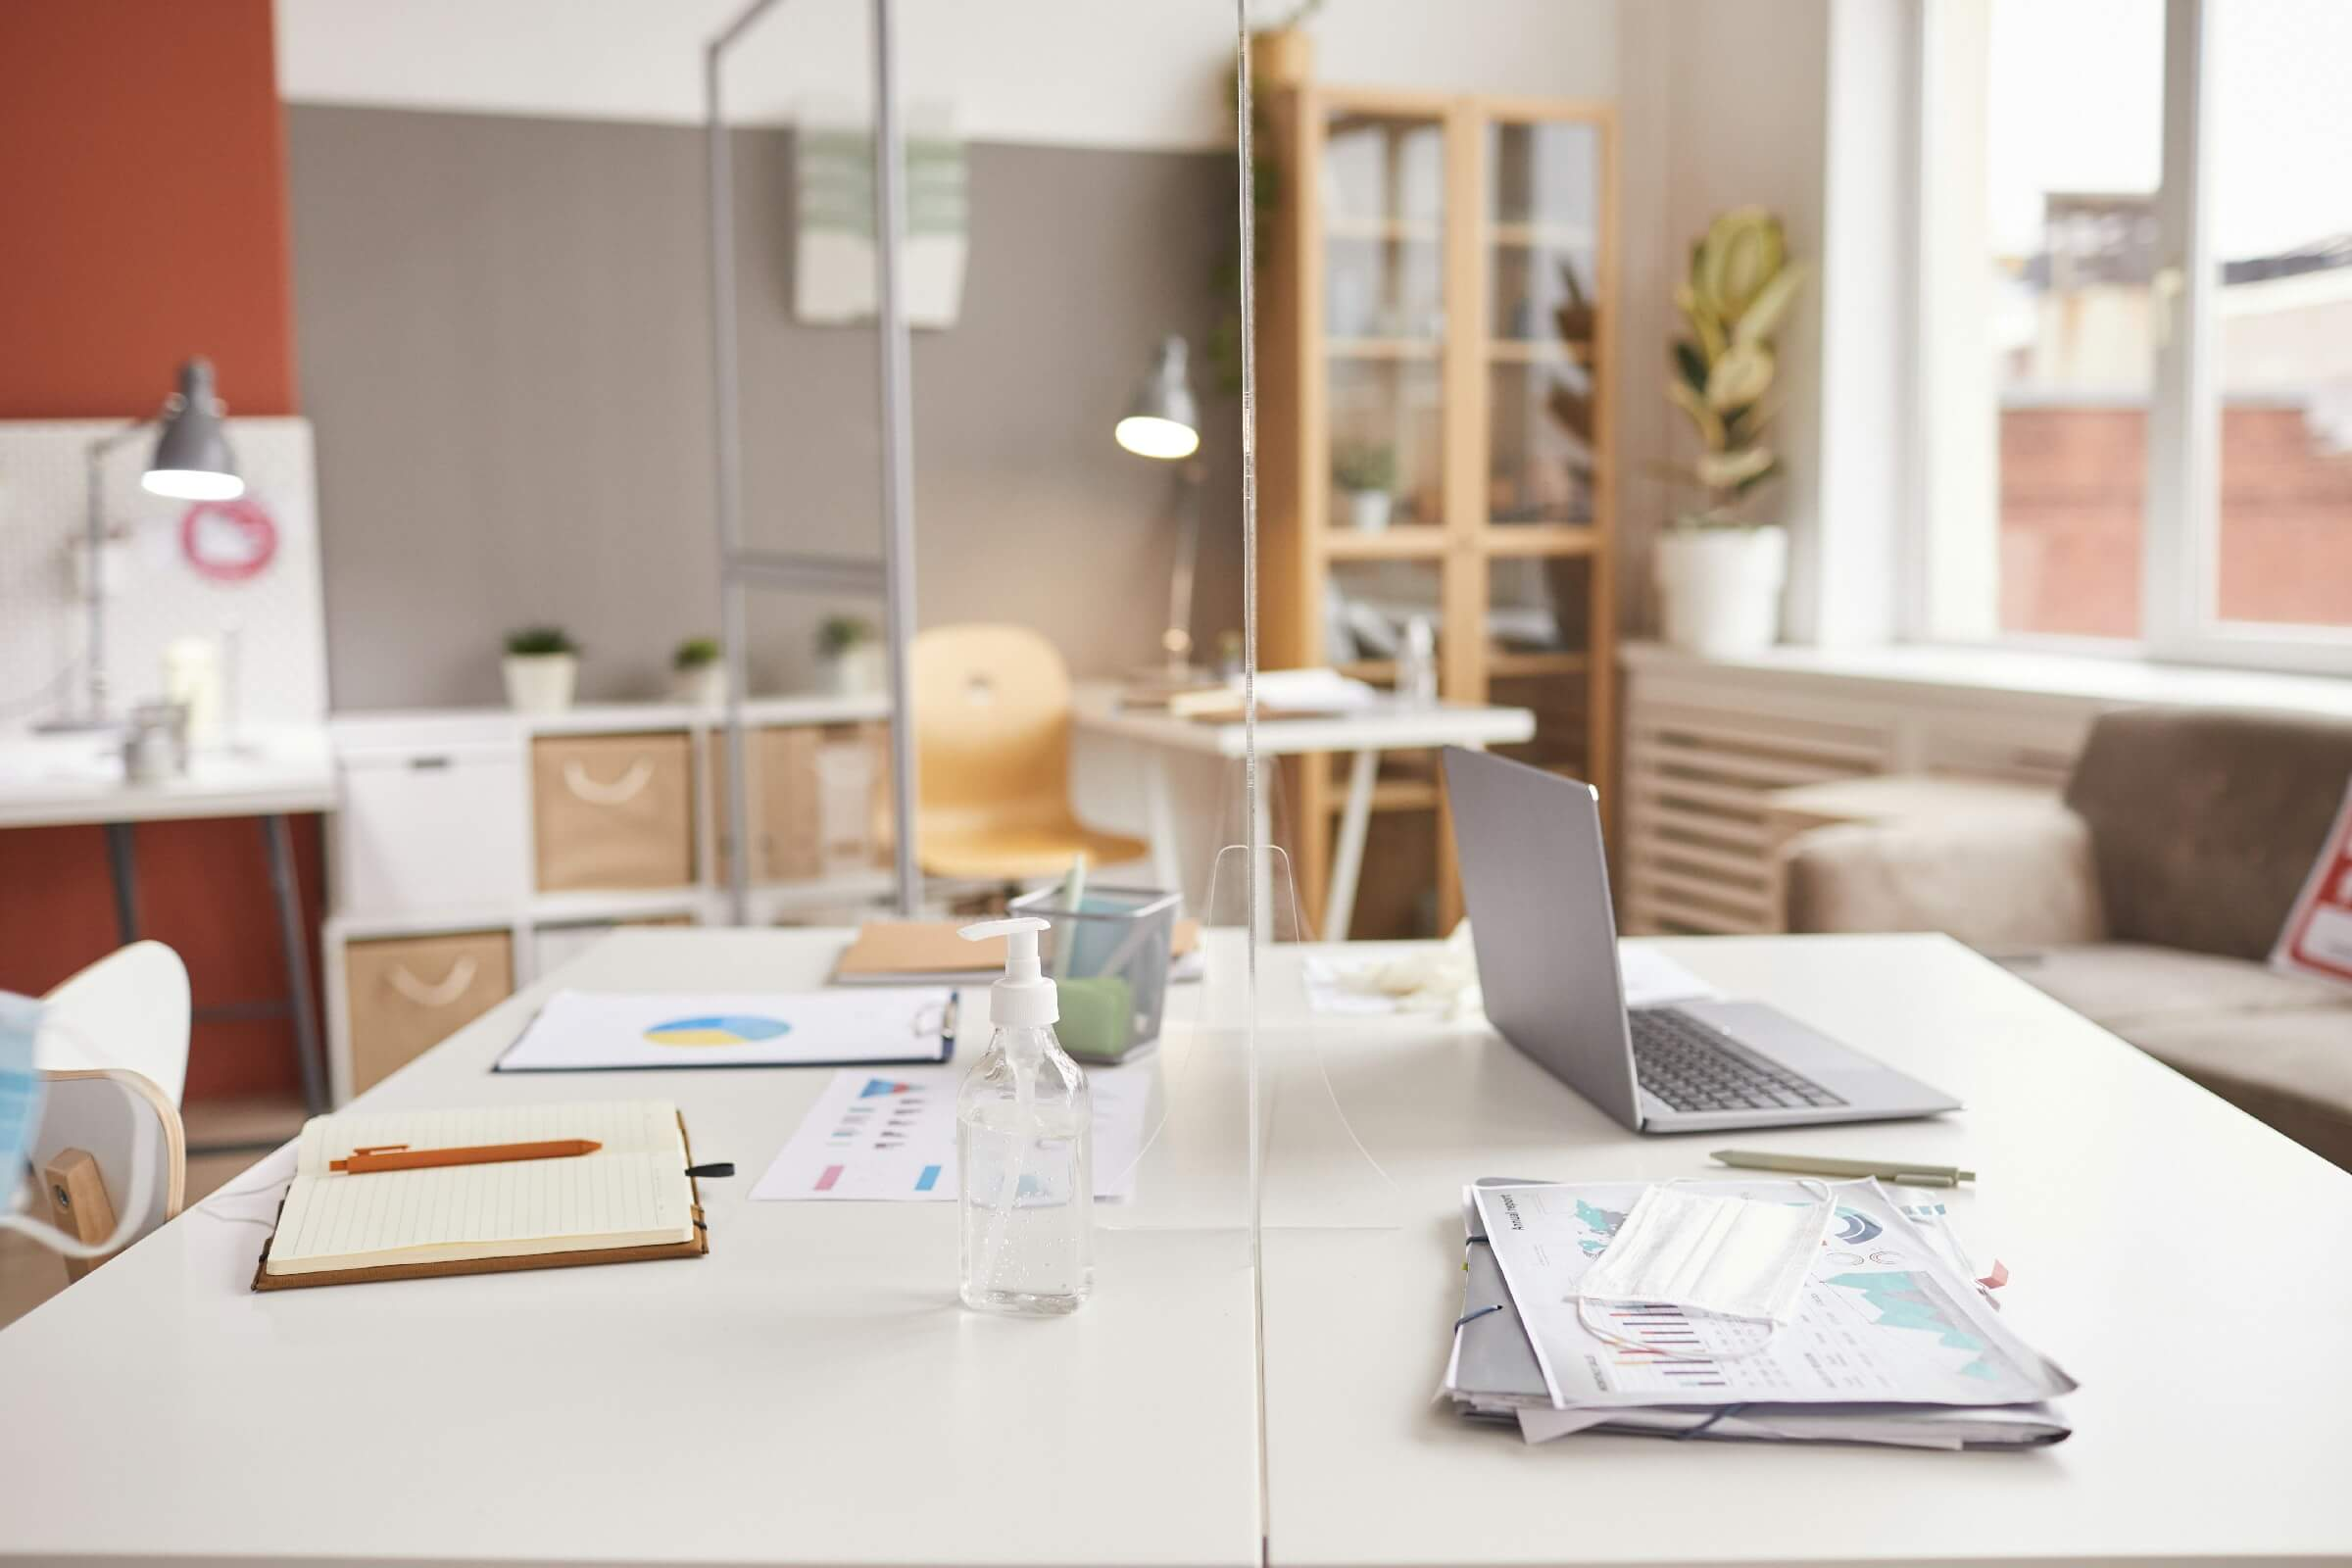 How to Do Office Cubicle Decor to Make Your Workspace Beautiful